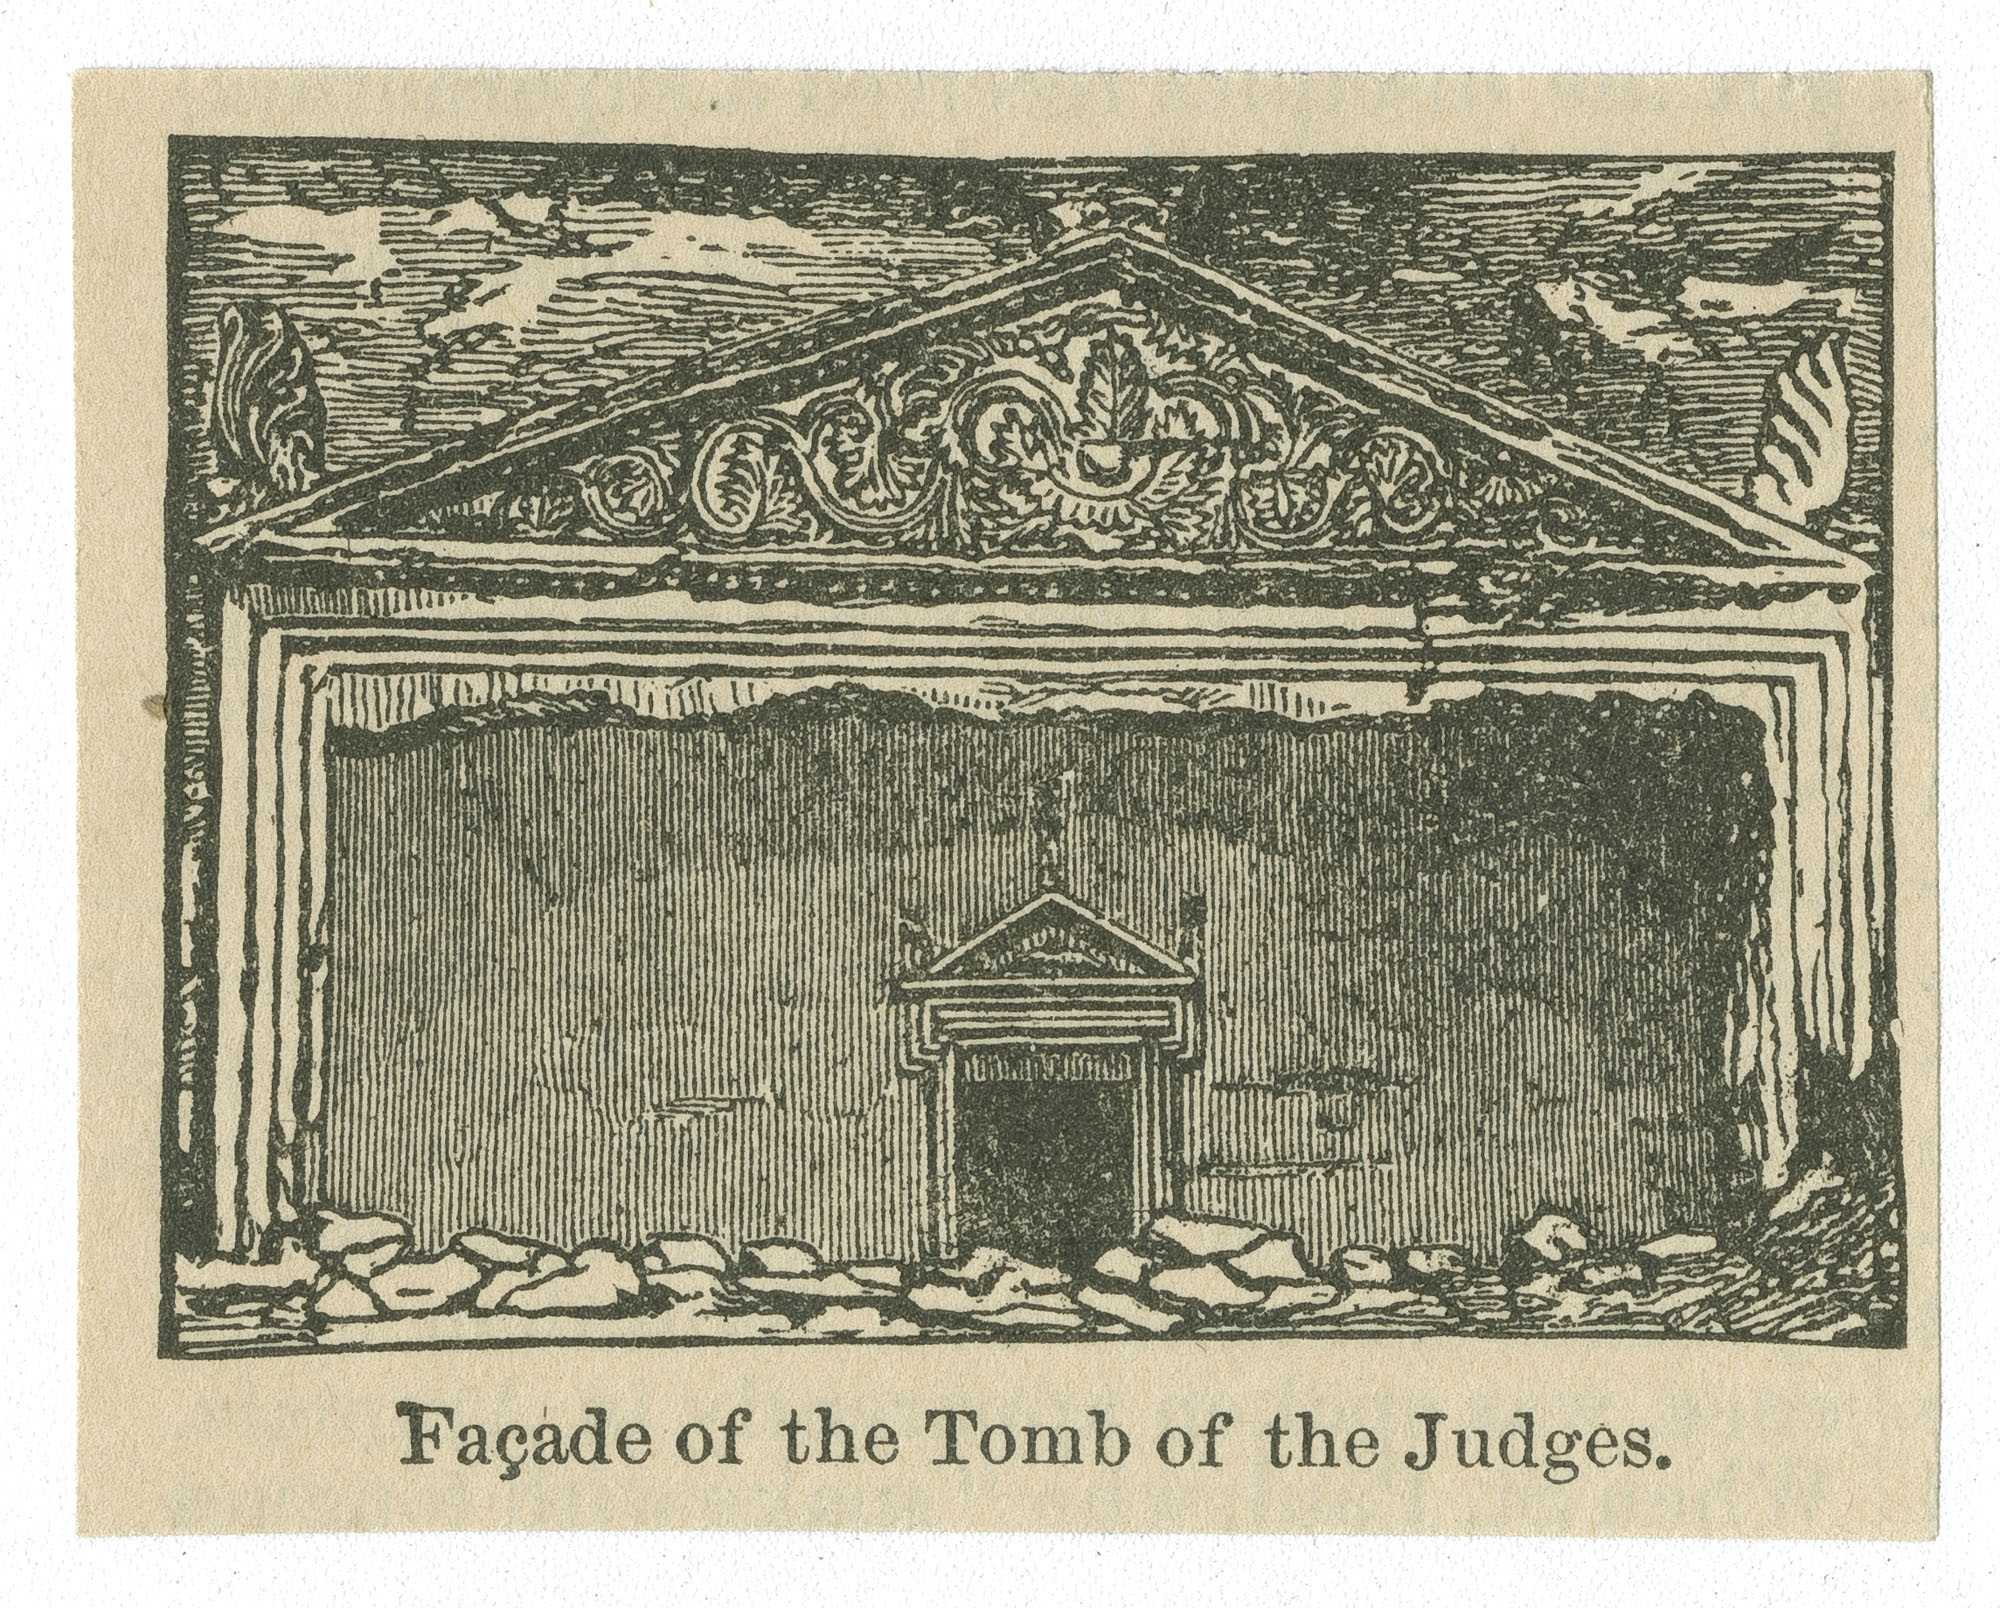 Façade of the Tomb of the Judges